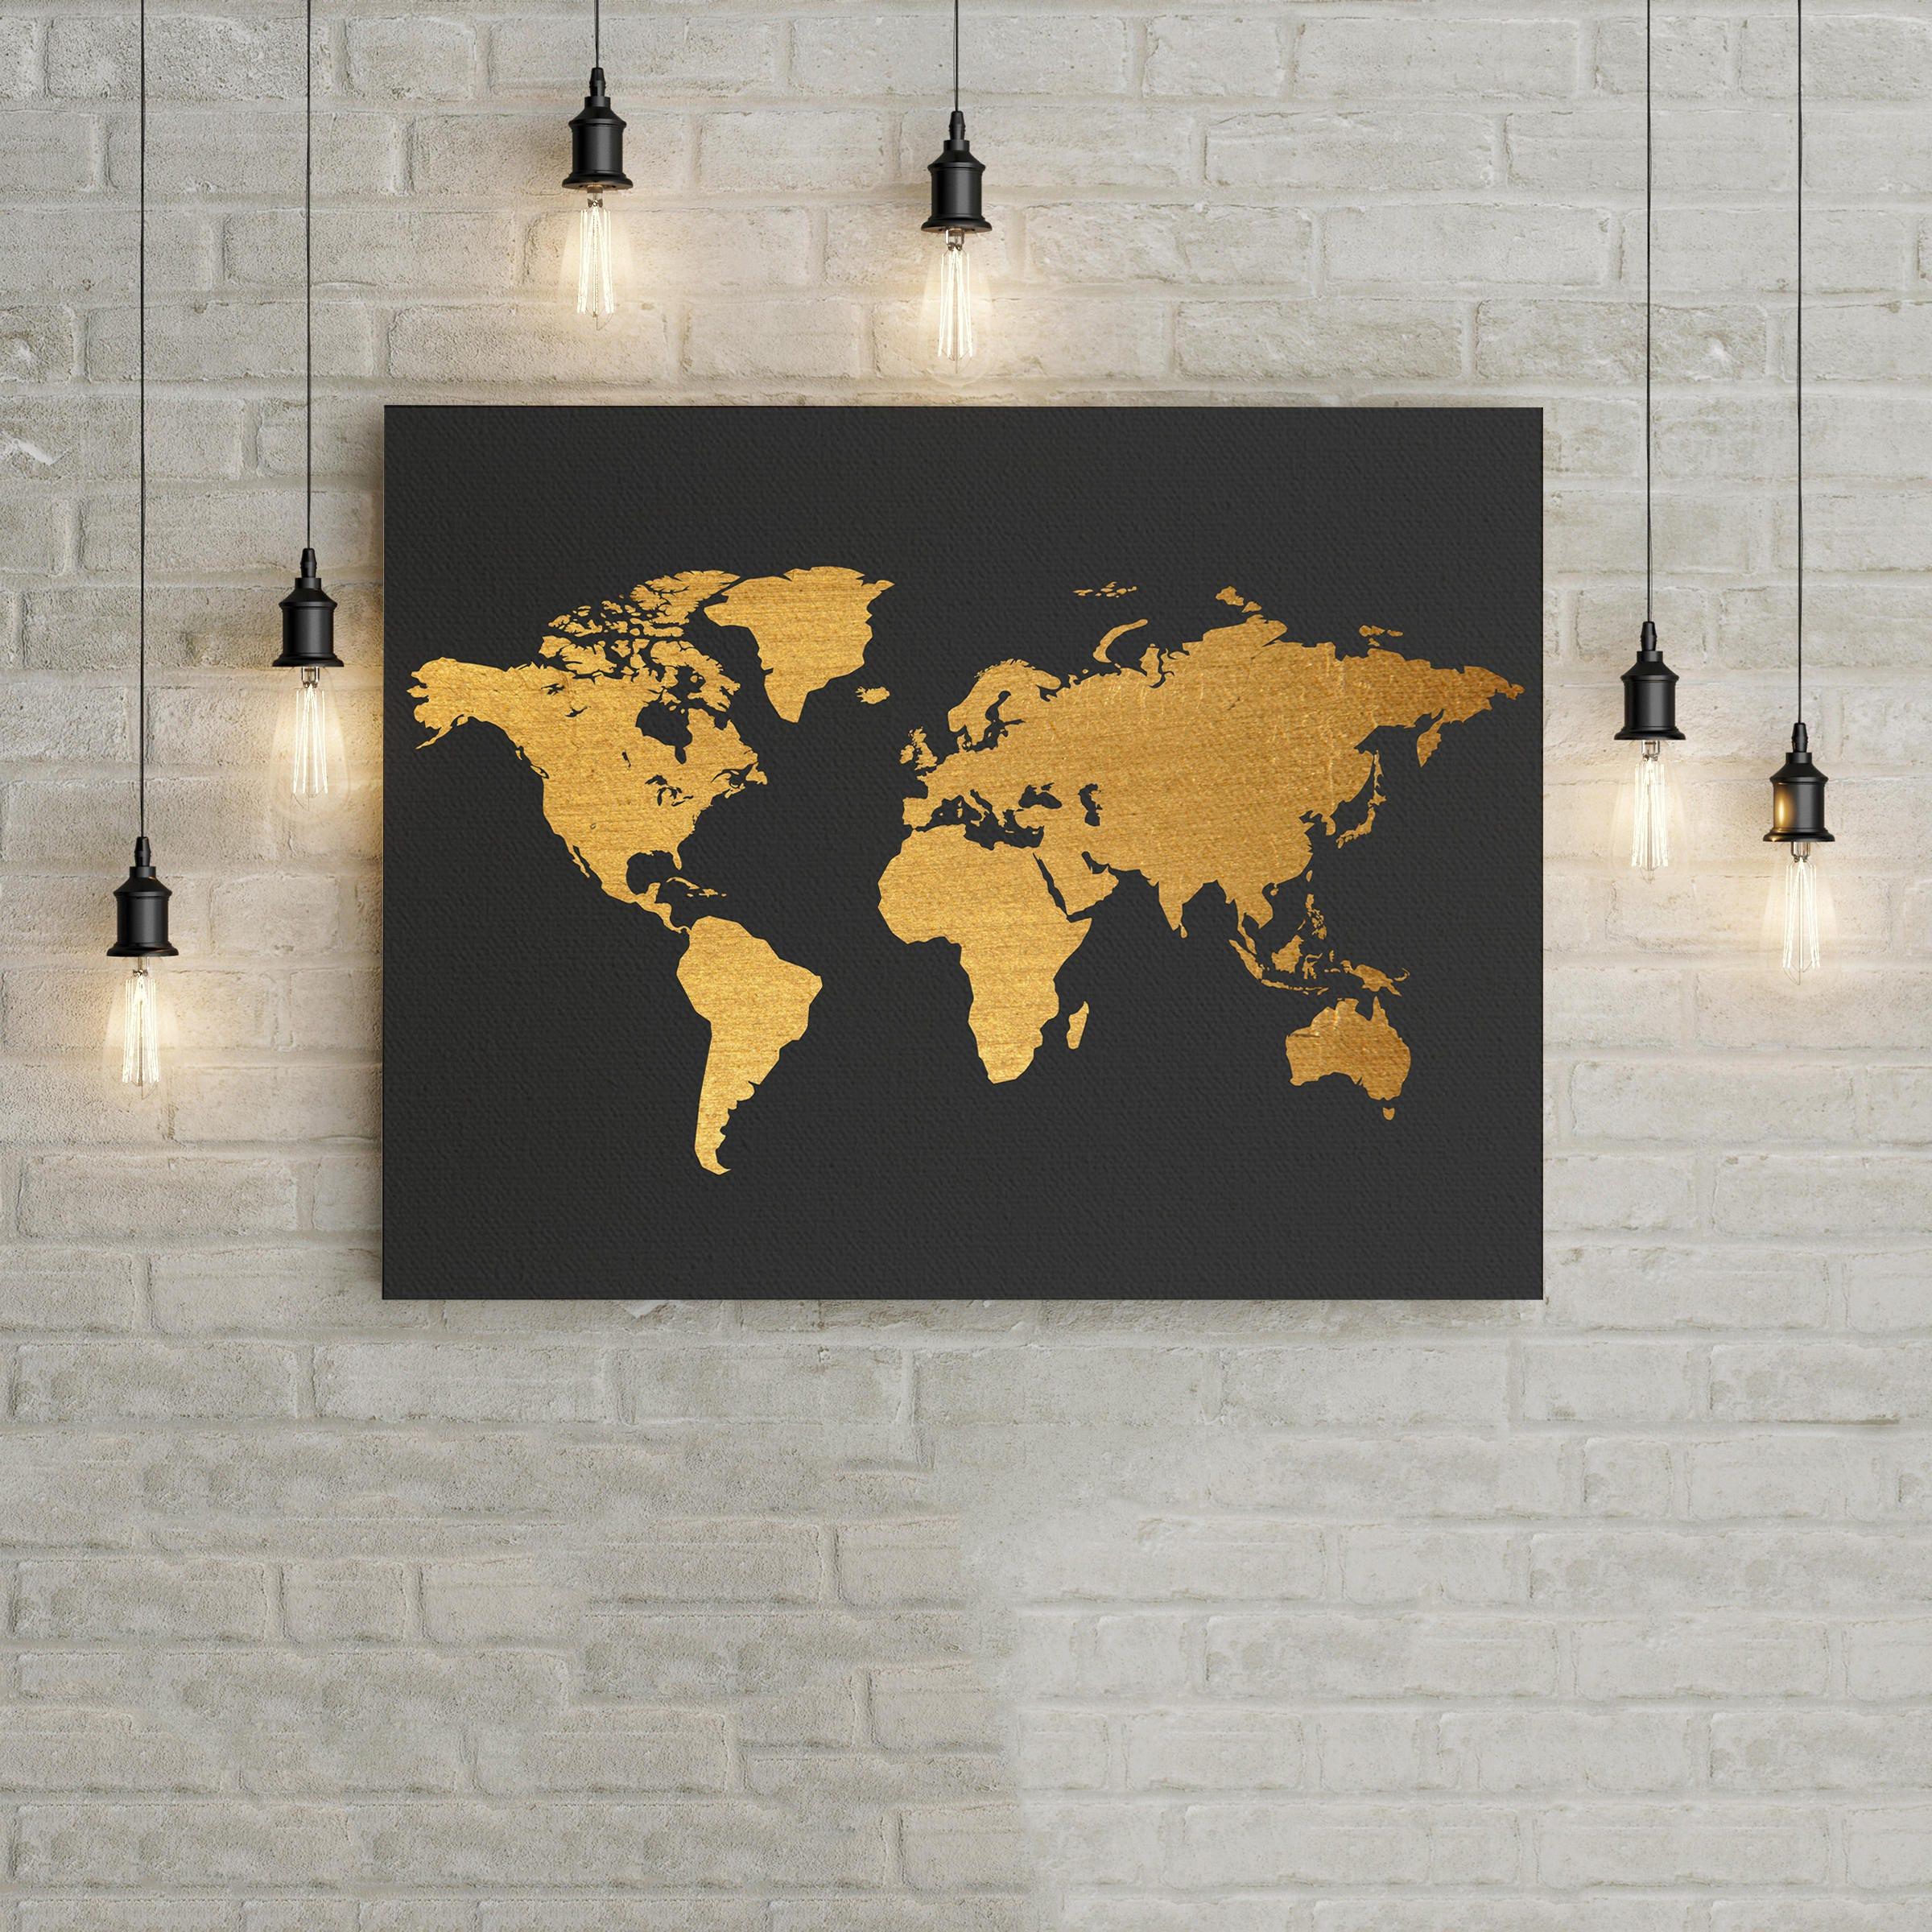 World Map Black And Gold Home Decor Wall Art Poster Office